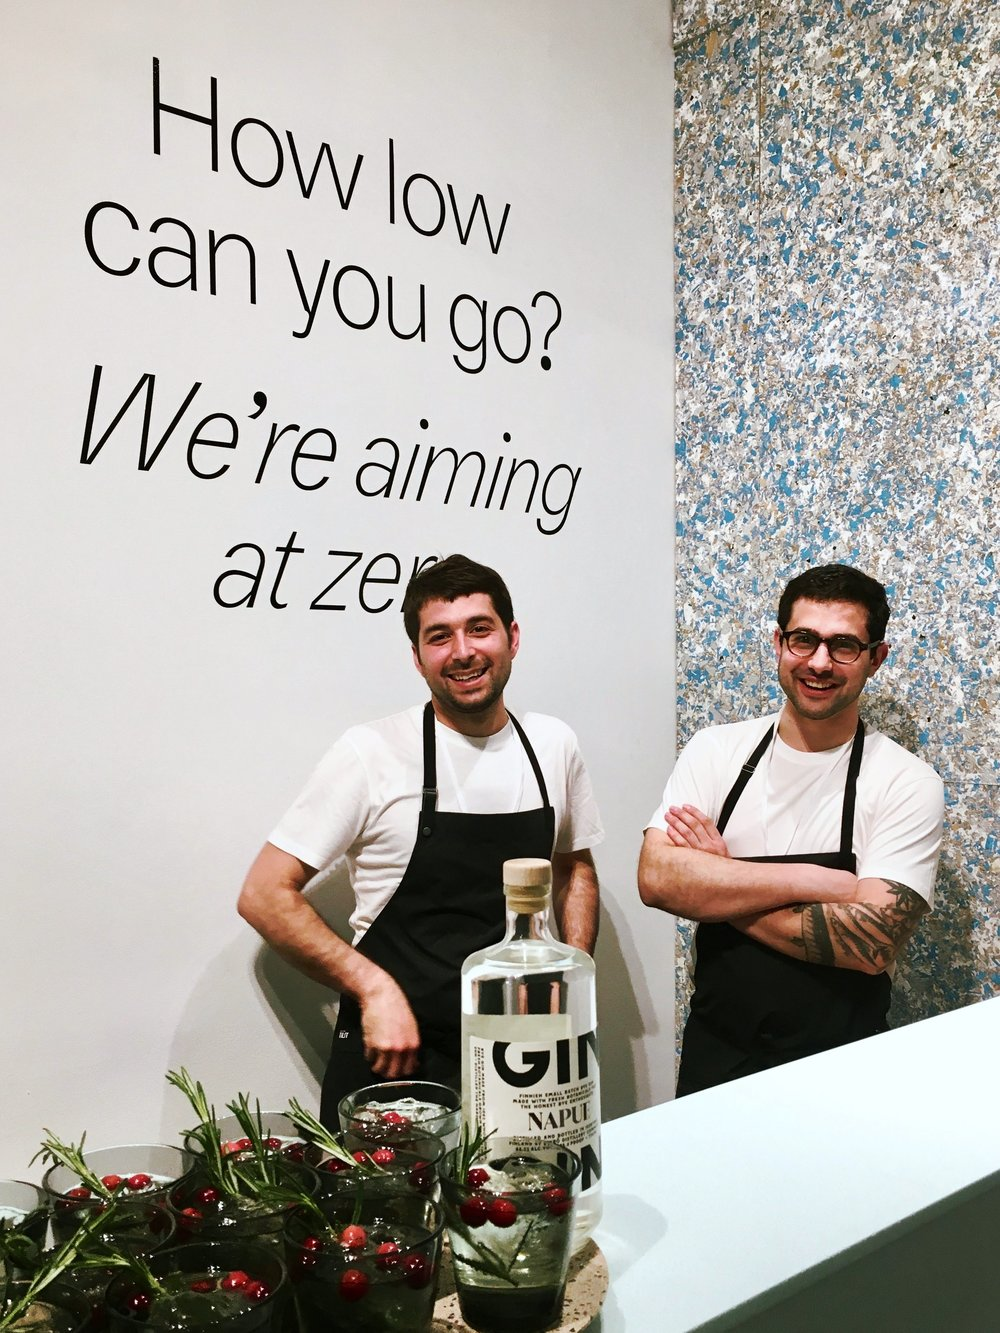 Chefs Albert Franch Sunyer and Luka Balac from Restaurant Nolla, ready to taste Napue Gin at the opening of Zero Waste Bistro. Image: FCINY.